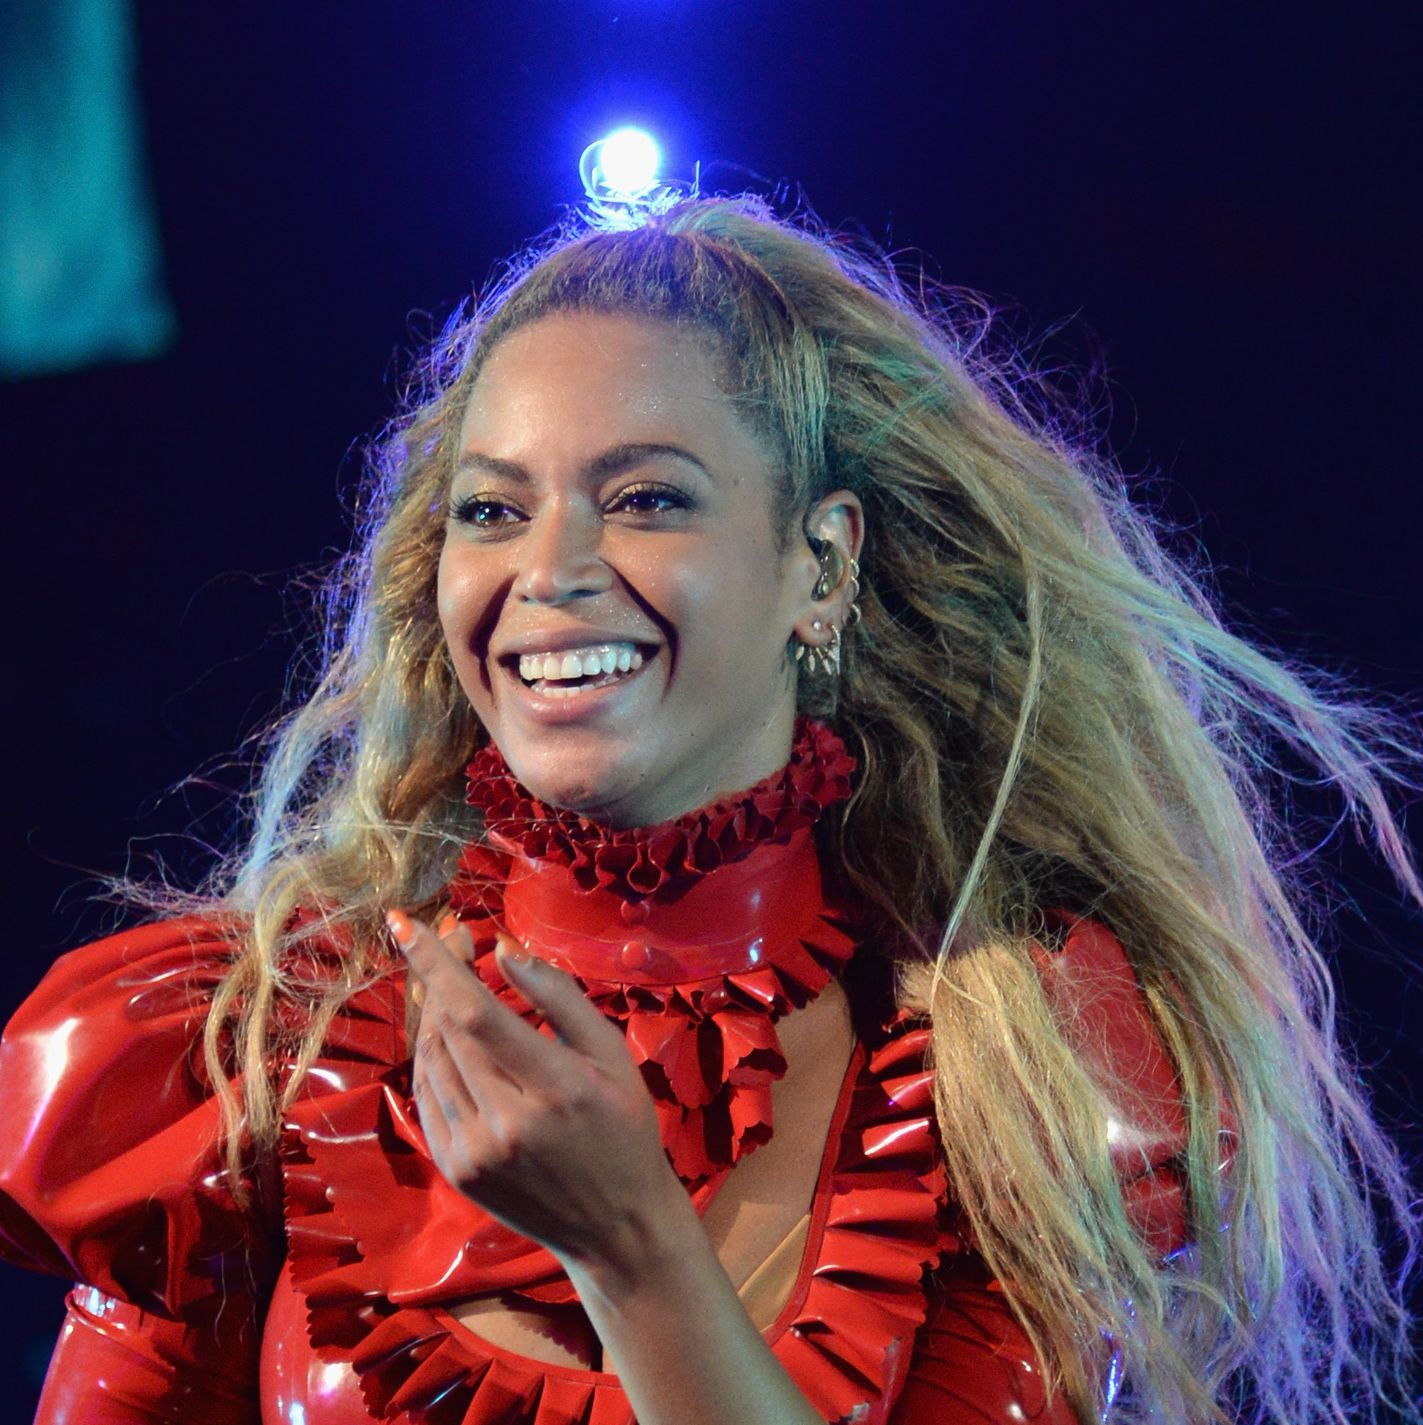 Beyoncé Stunned in a Hot Red Lace Minidress for Valentine's Day